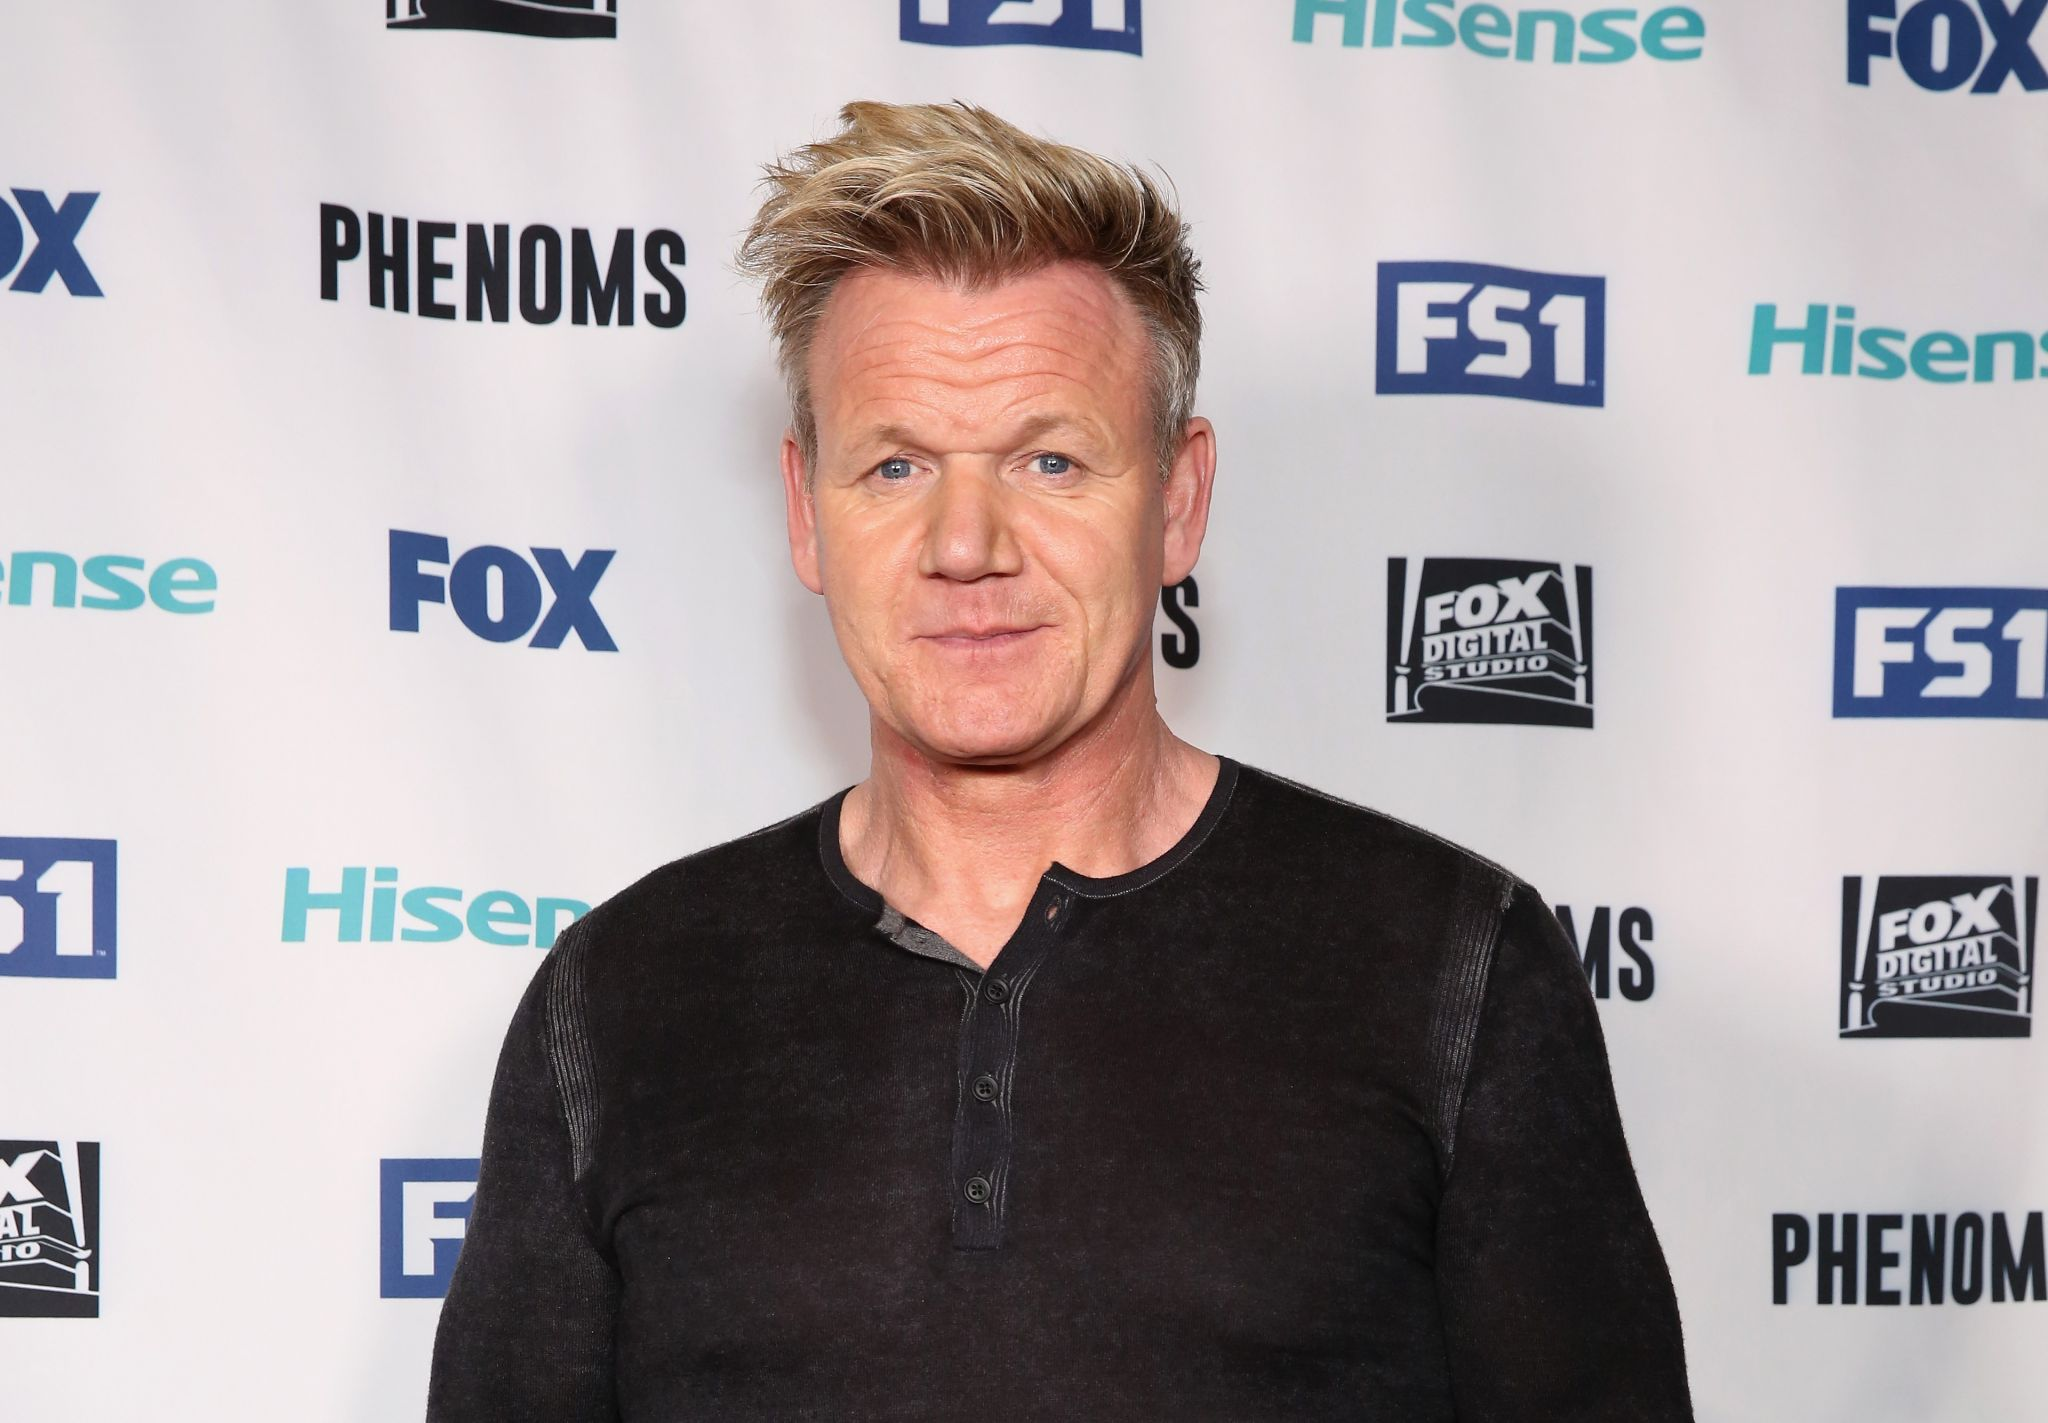 Why did no one tell me Gordon Ramsay was in Texas?